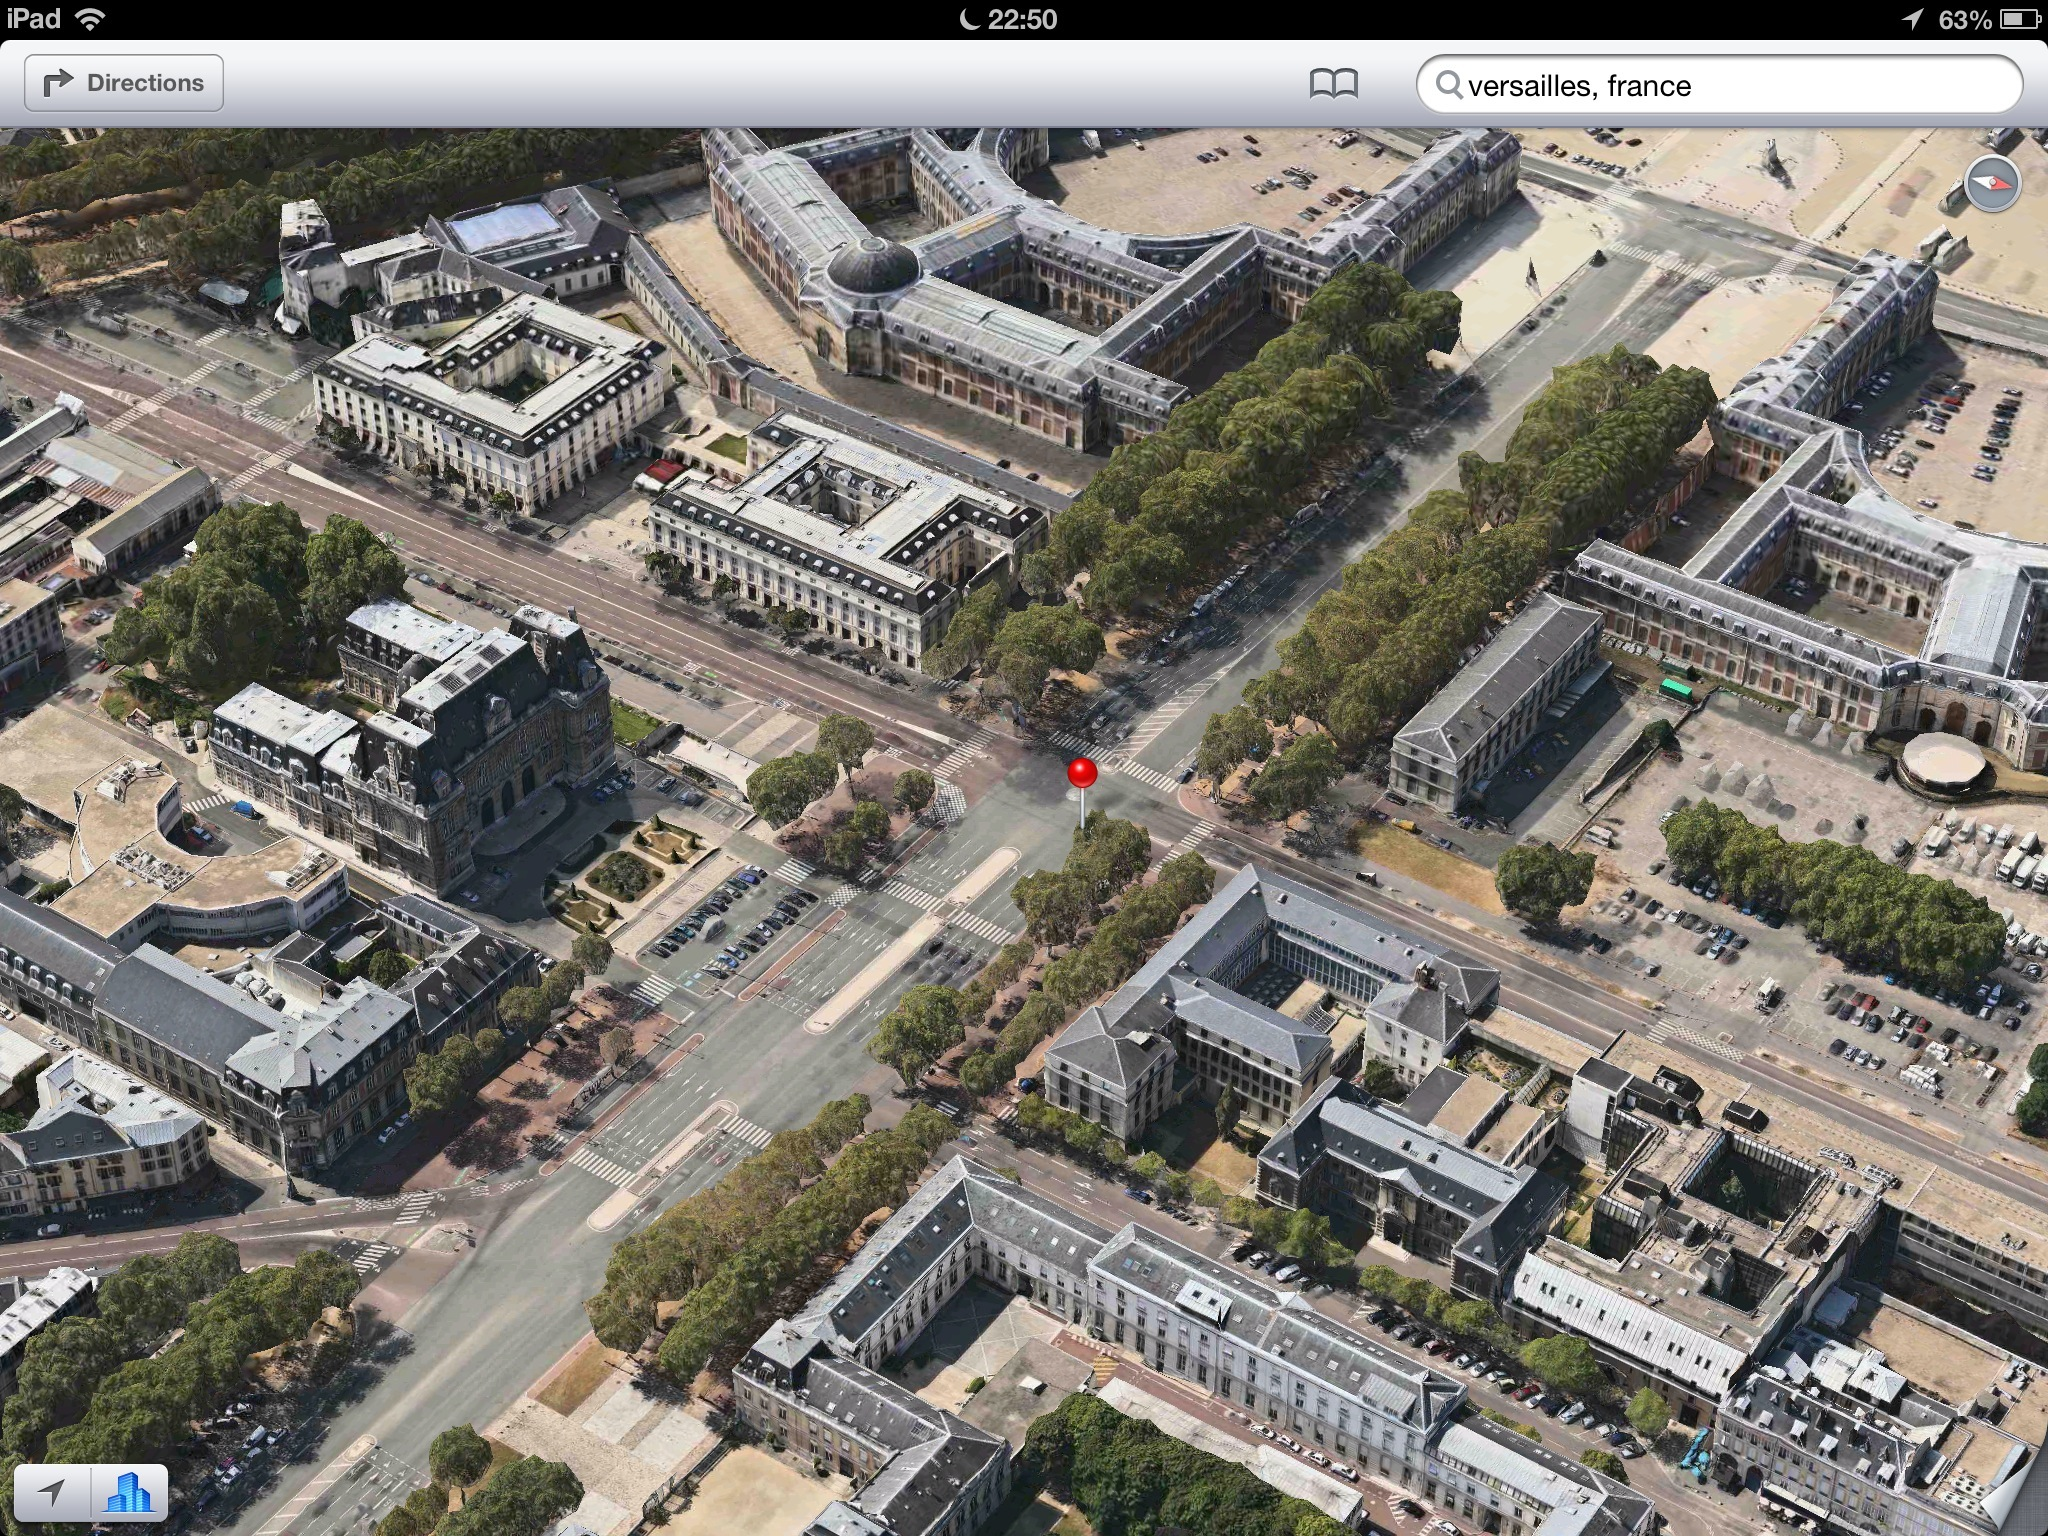 Apple Maps (Flyover, Versailles, France)